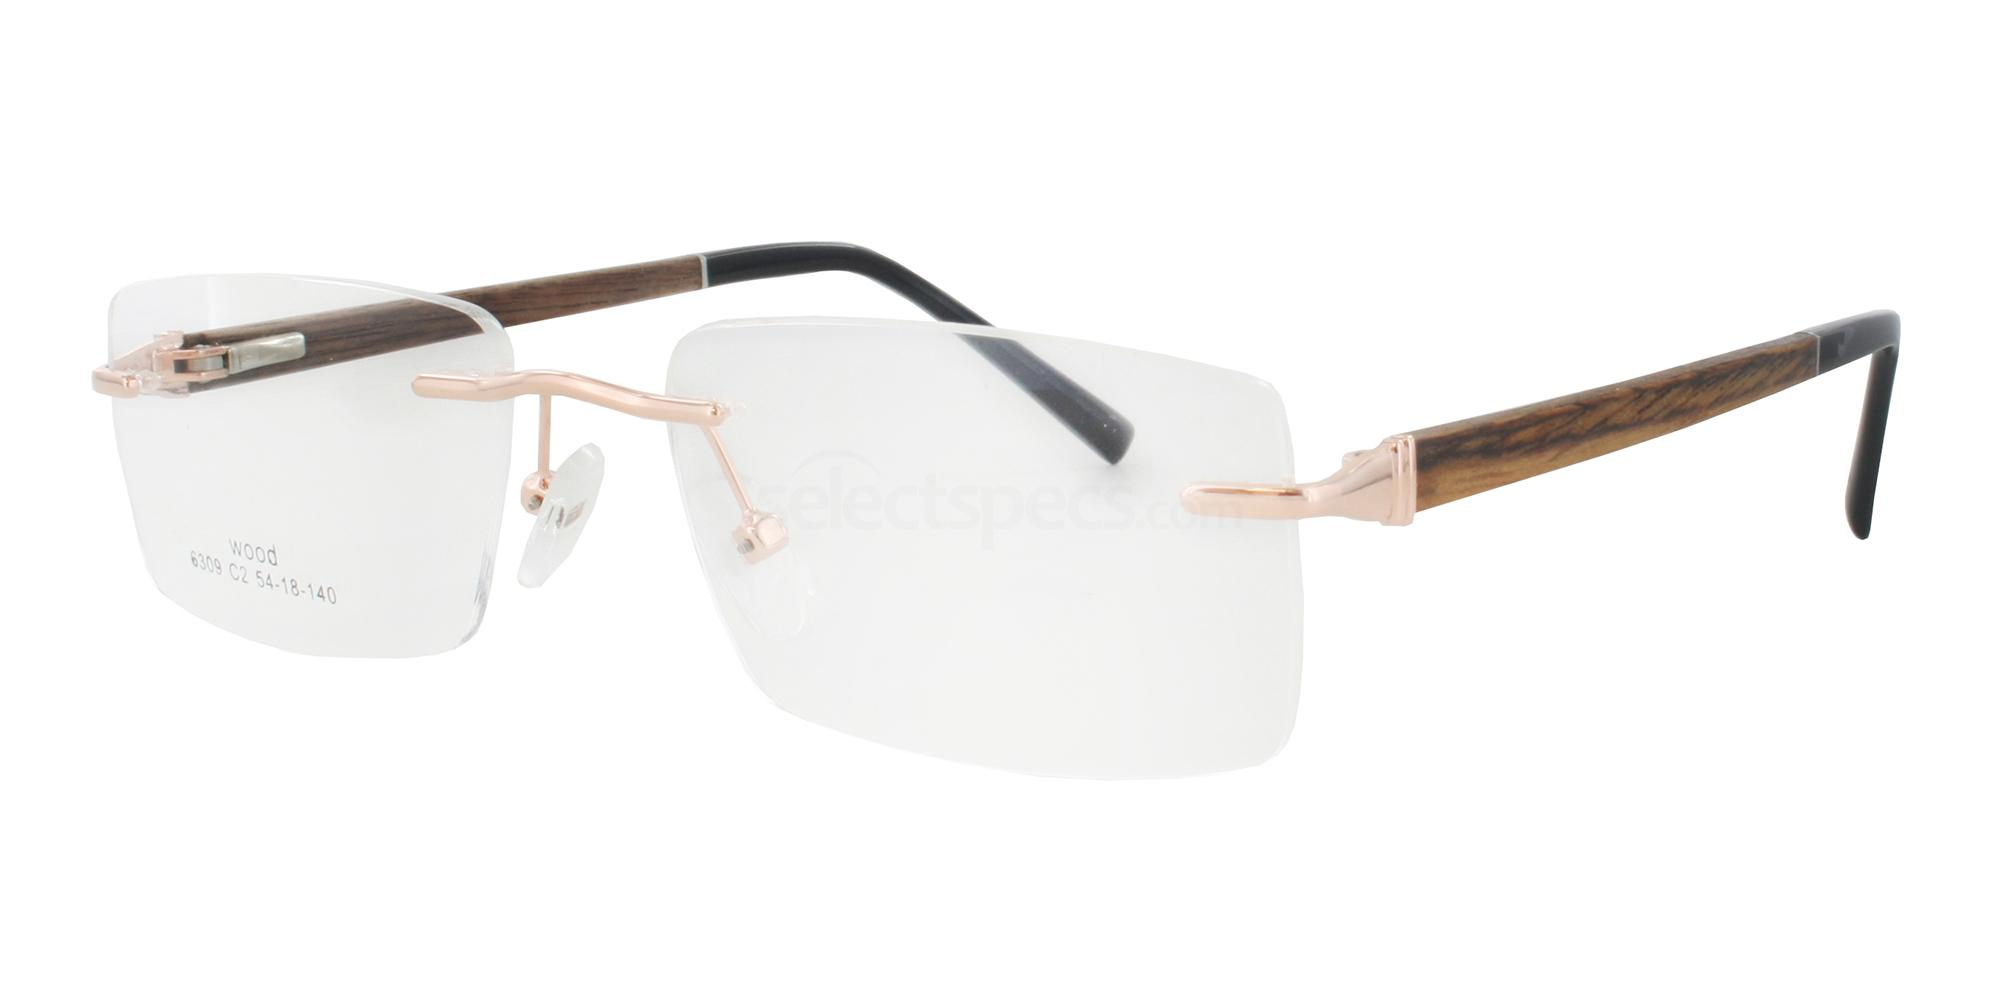 wooden eyewear prescription glasses Infinity 6309